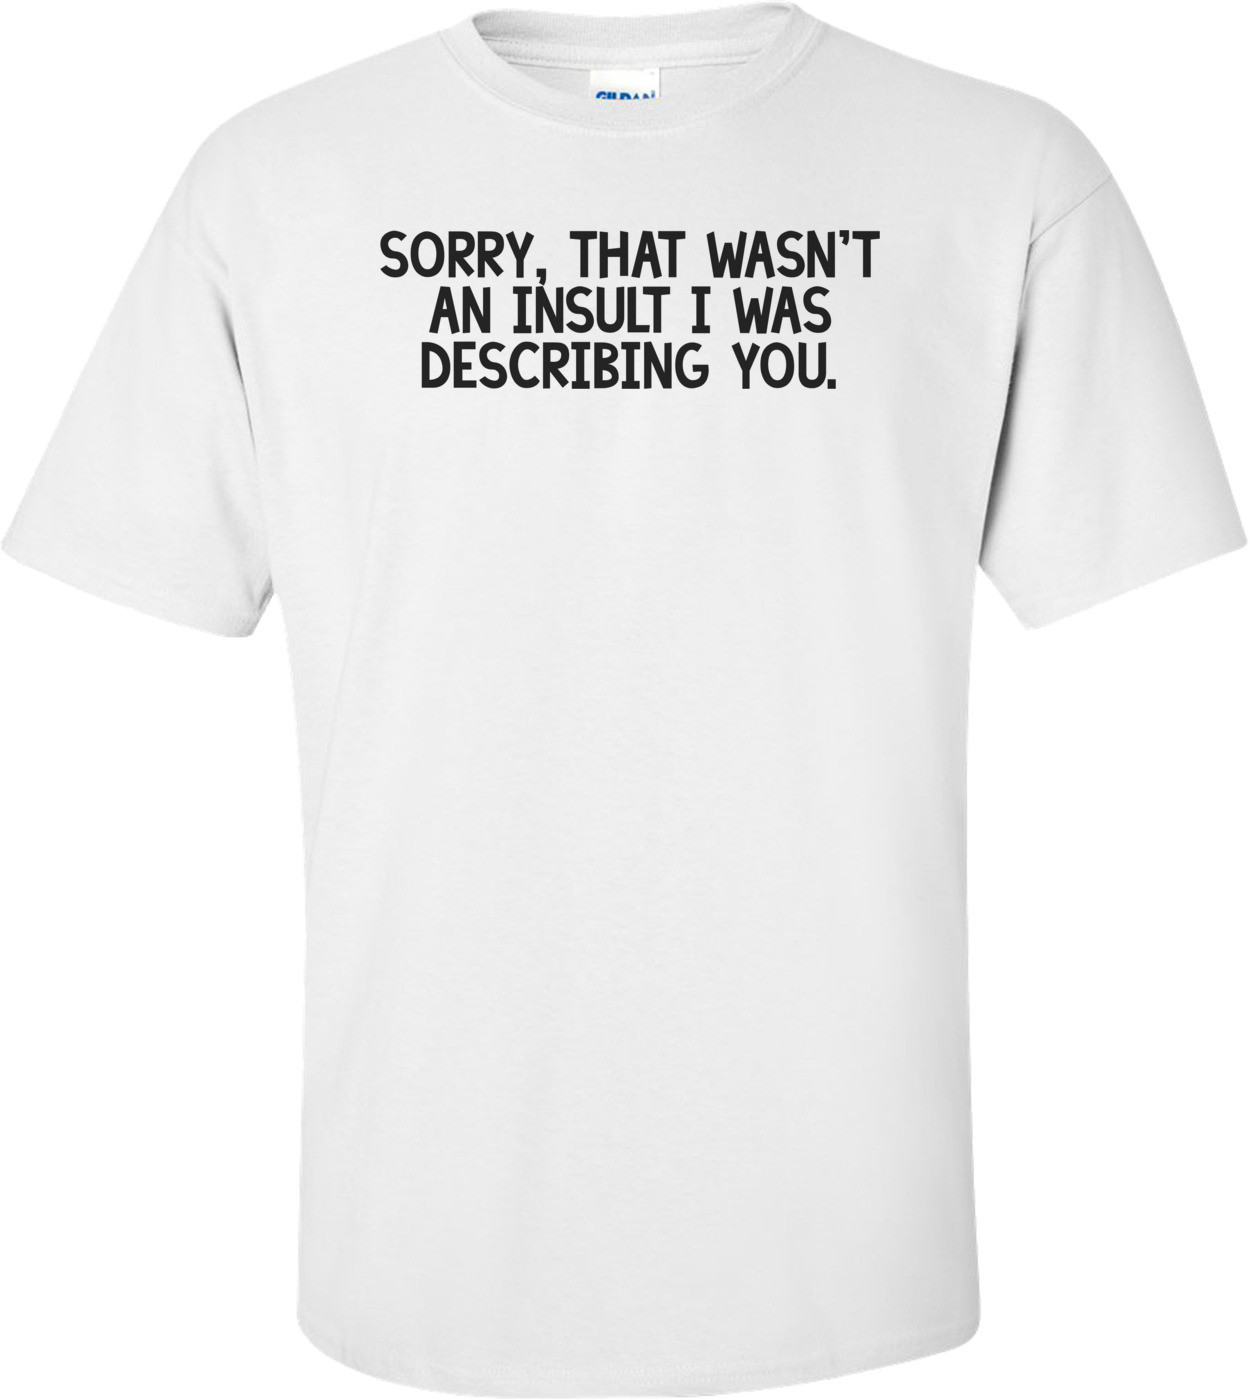 Sorry, that wasn't an insult I was describing you. Shirt